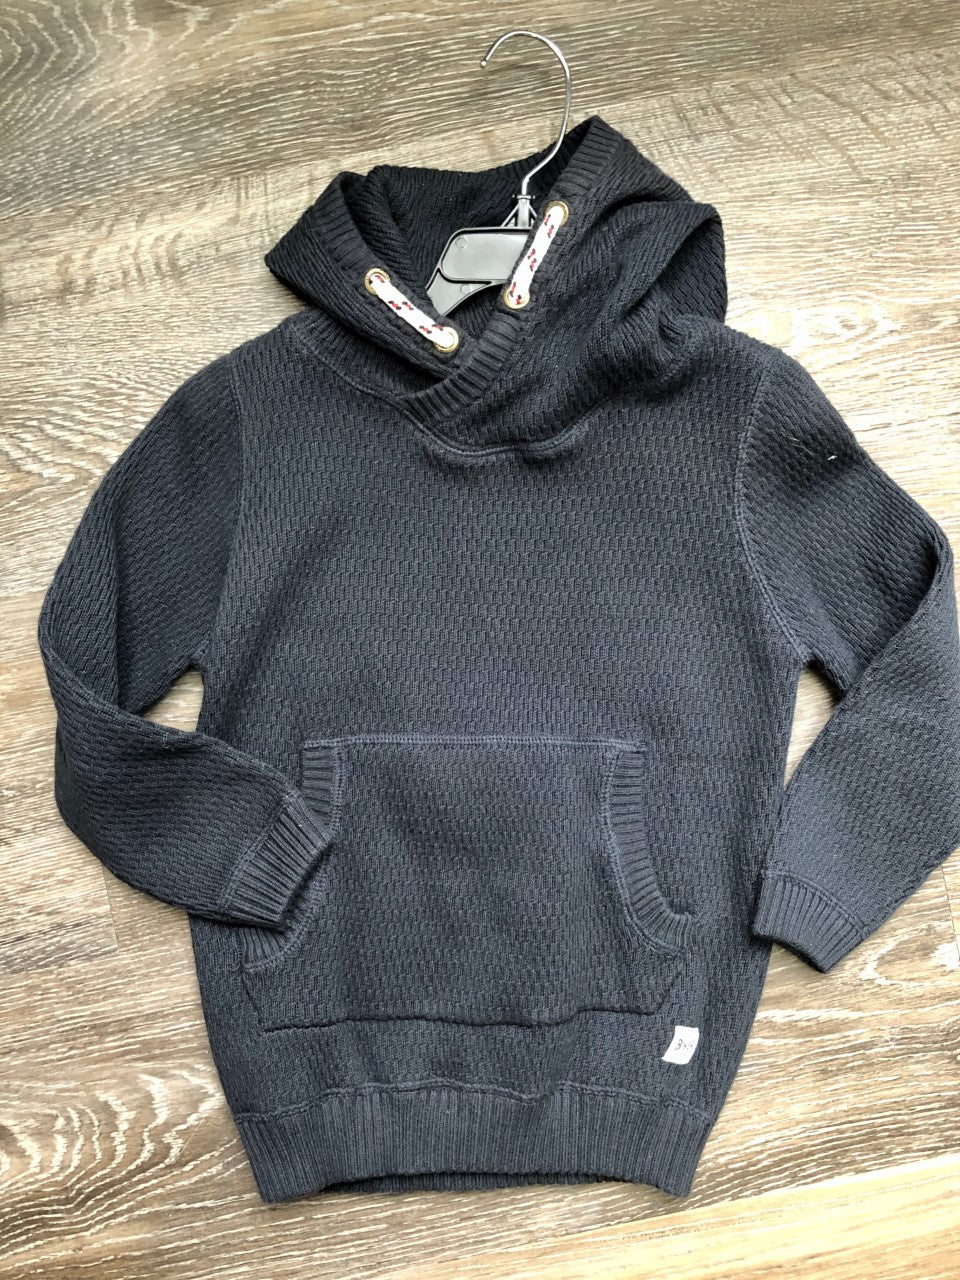 Navy Knit Sweater with Kangaroo Pocket and Rope Hood Detail - Lullaby's Boutique